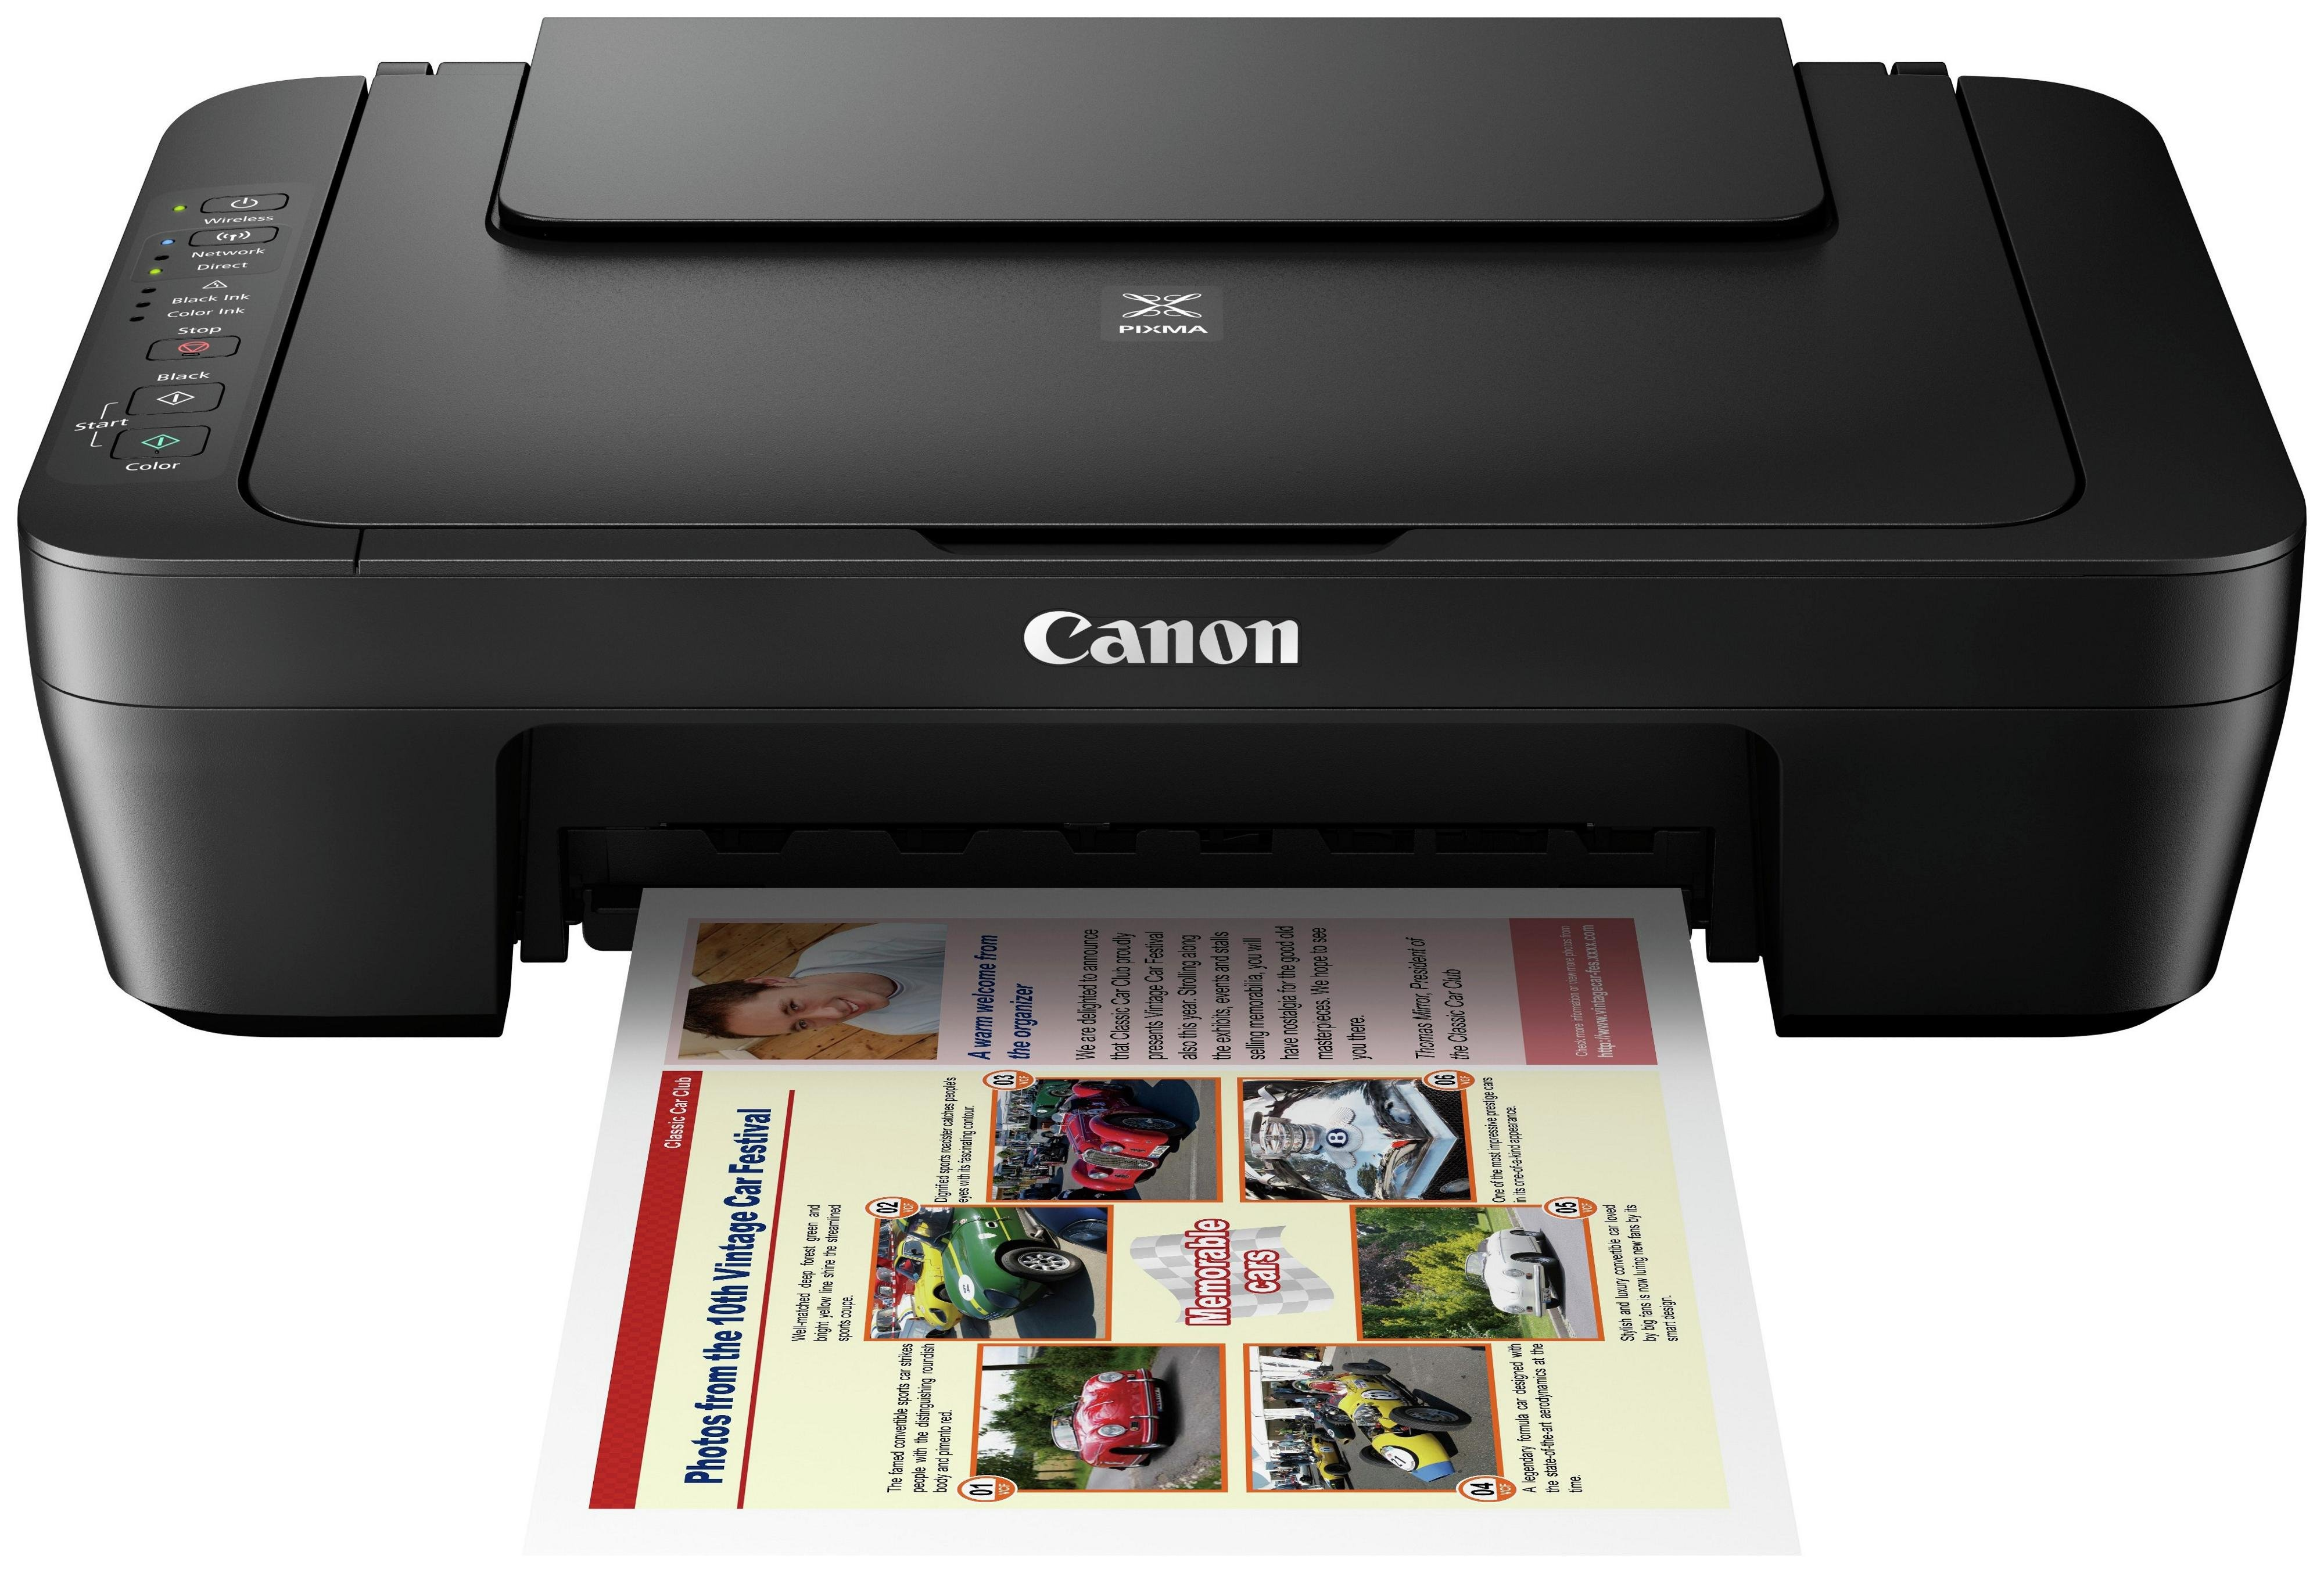 Image of Canon Pixma MG3050 All-In-One Printer